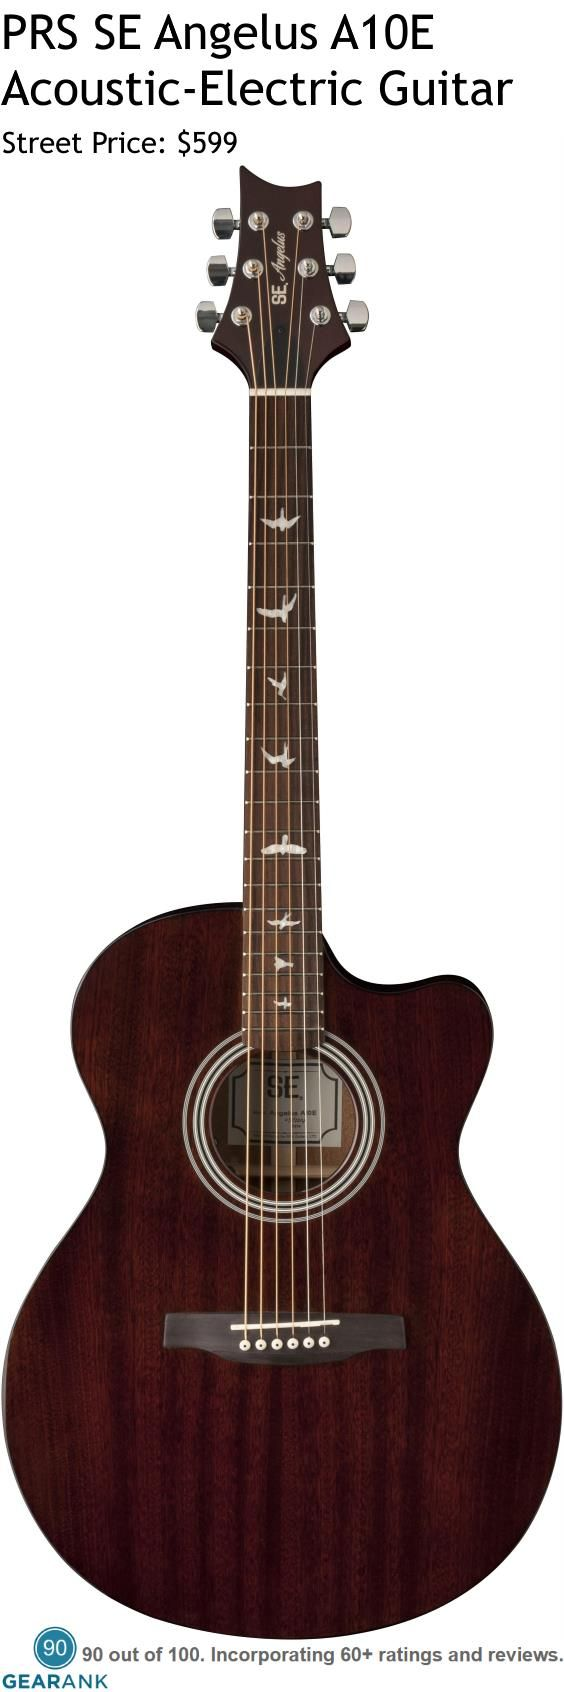 PRS SE Angelus A10E Acoustic-Electric Guitar. This is an all-mahogany guitar with a solid top and laminated back and sides. It uses an Undersaddle pickup with volume and tone controls. For a Detailed Guide to Acoustic Guitars see https://www.gearank.com/guides/acoustic-guitars